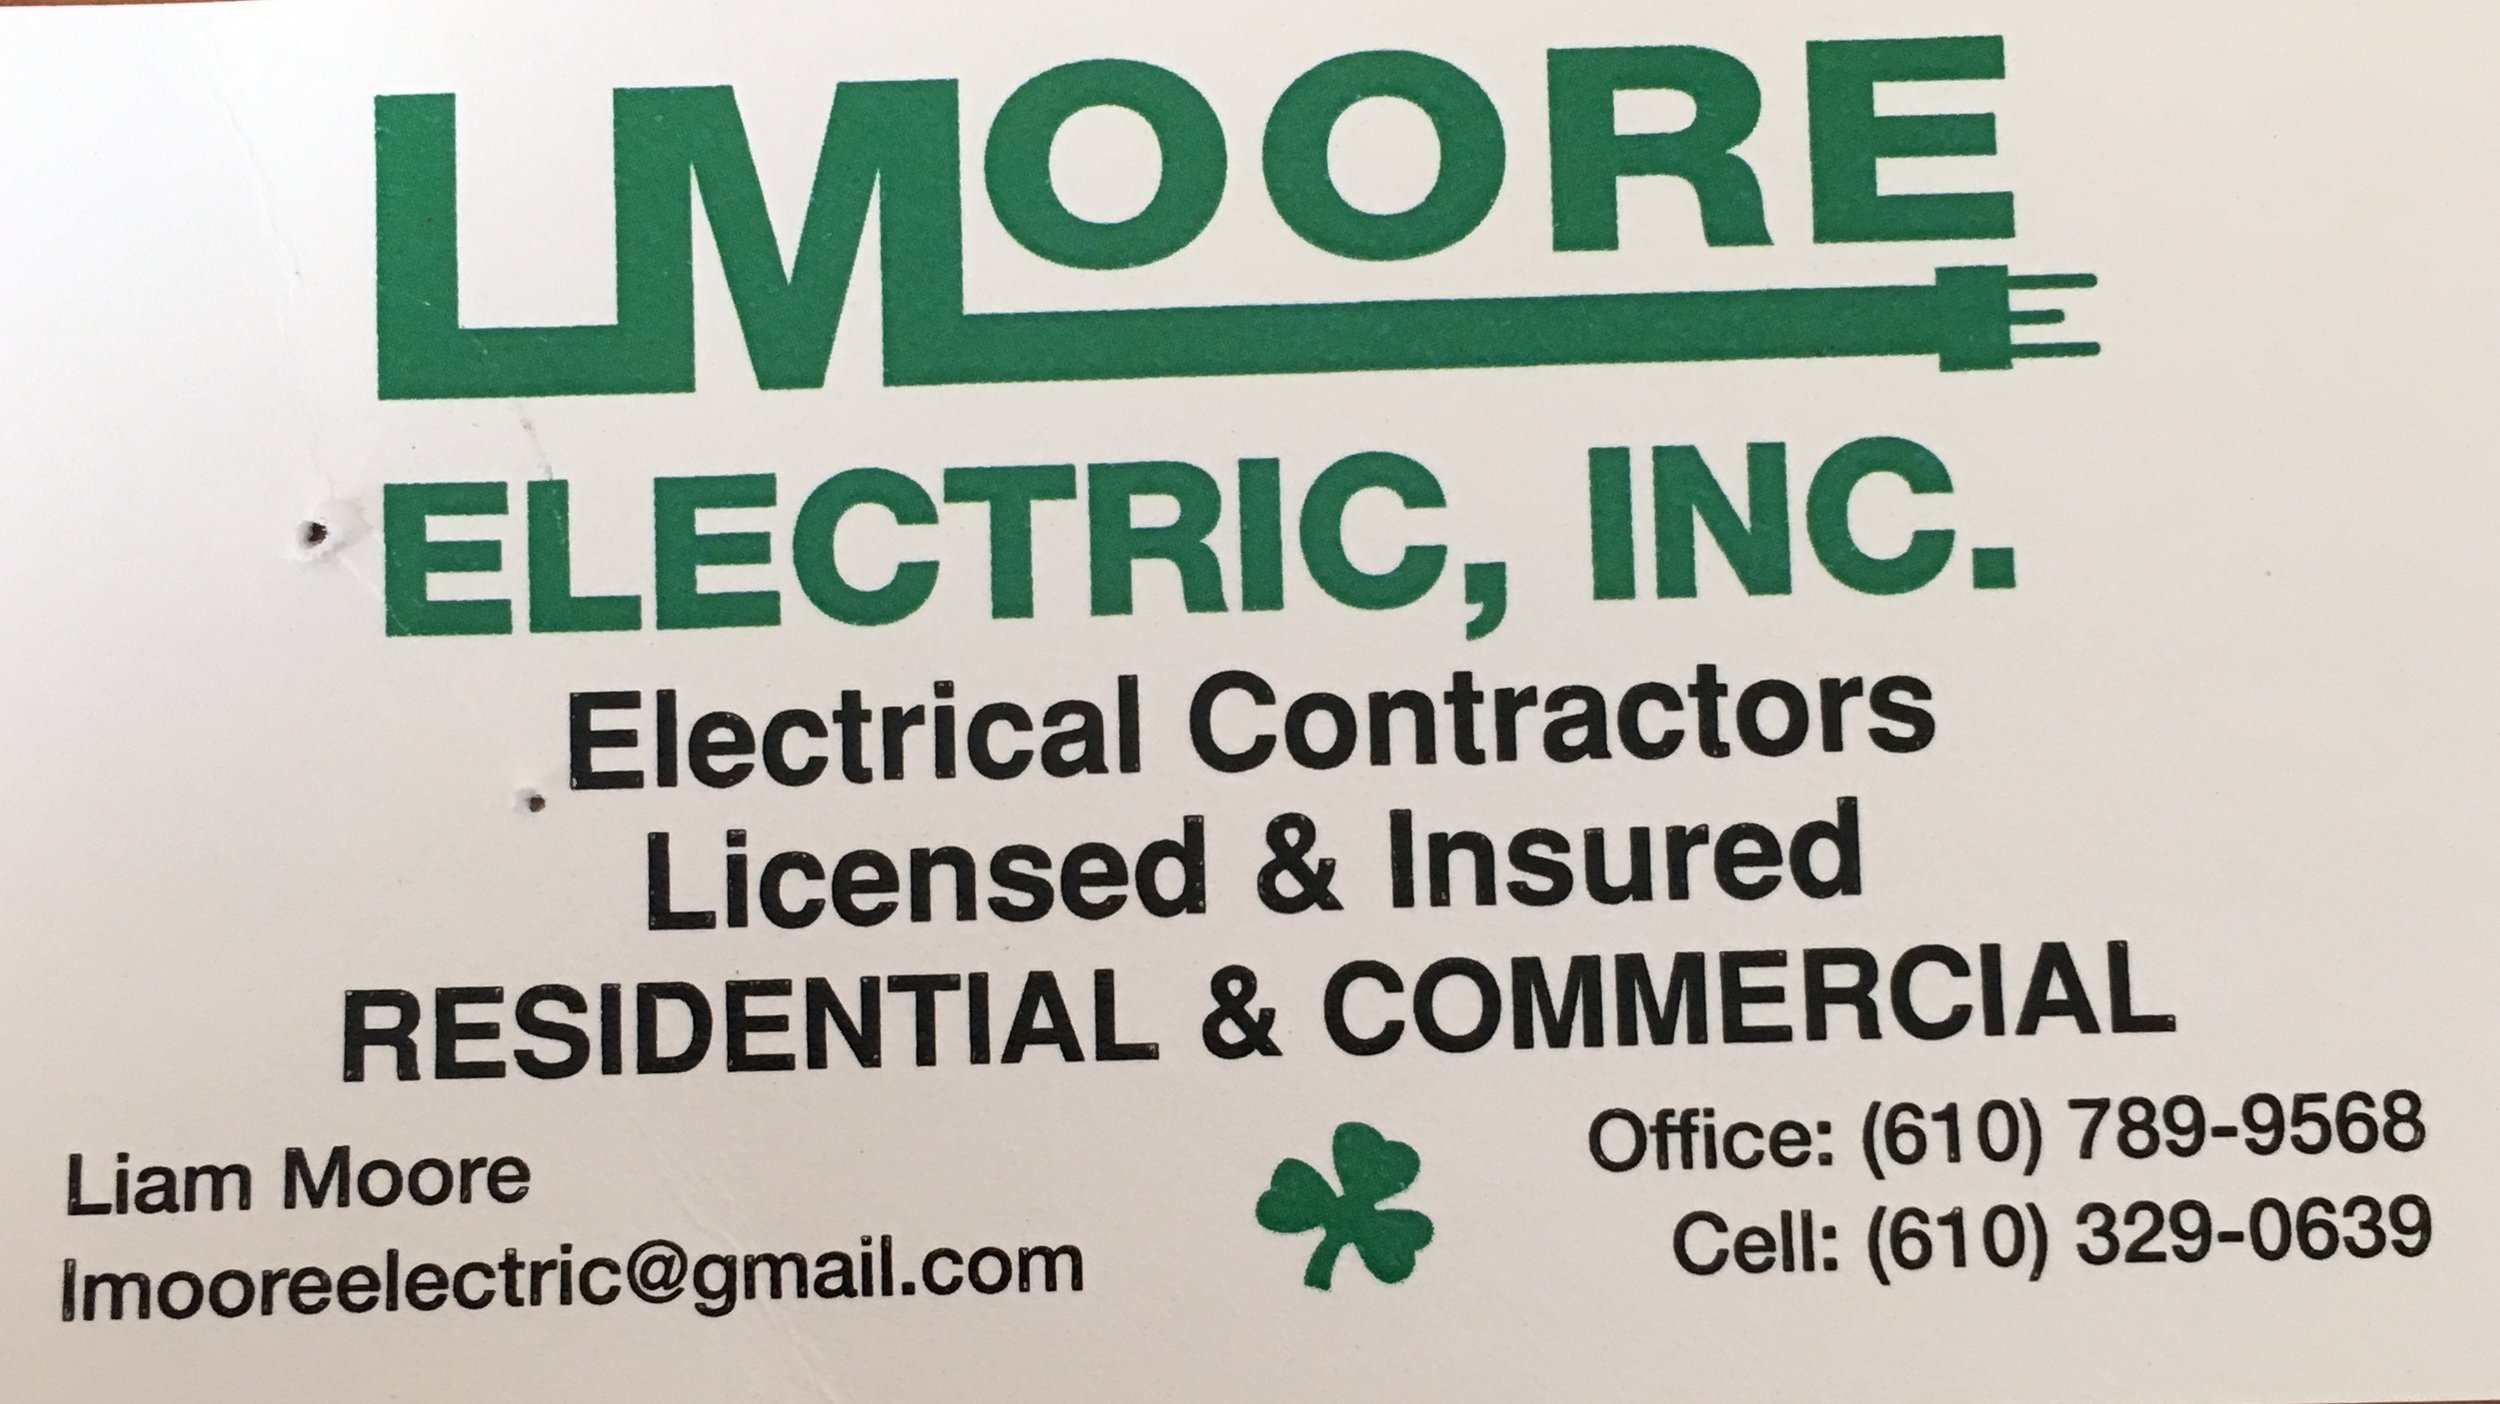 LMOORE ELECTRIC BUSINESS CARD.jpg